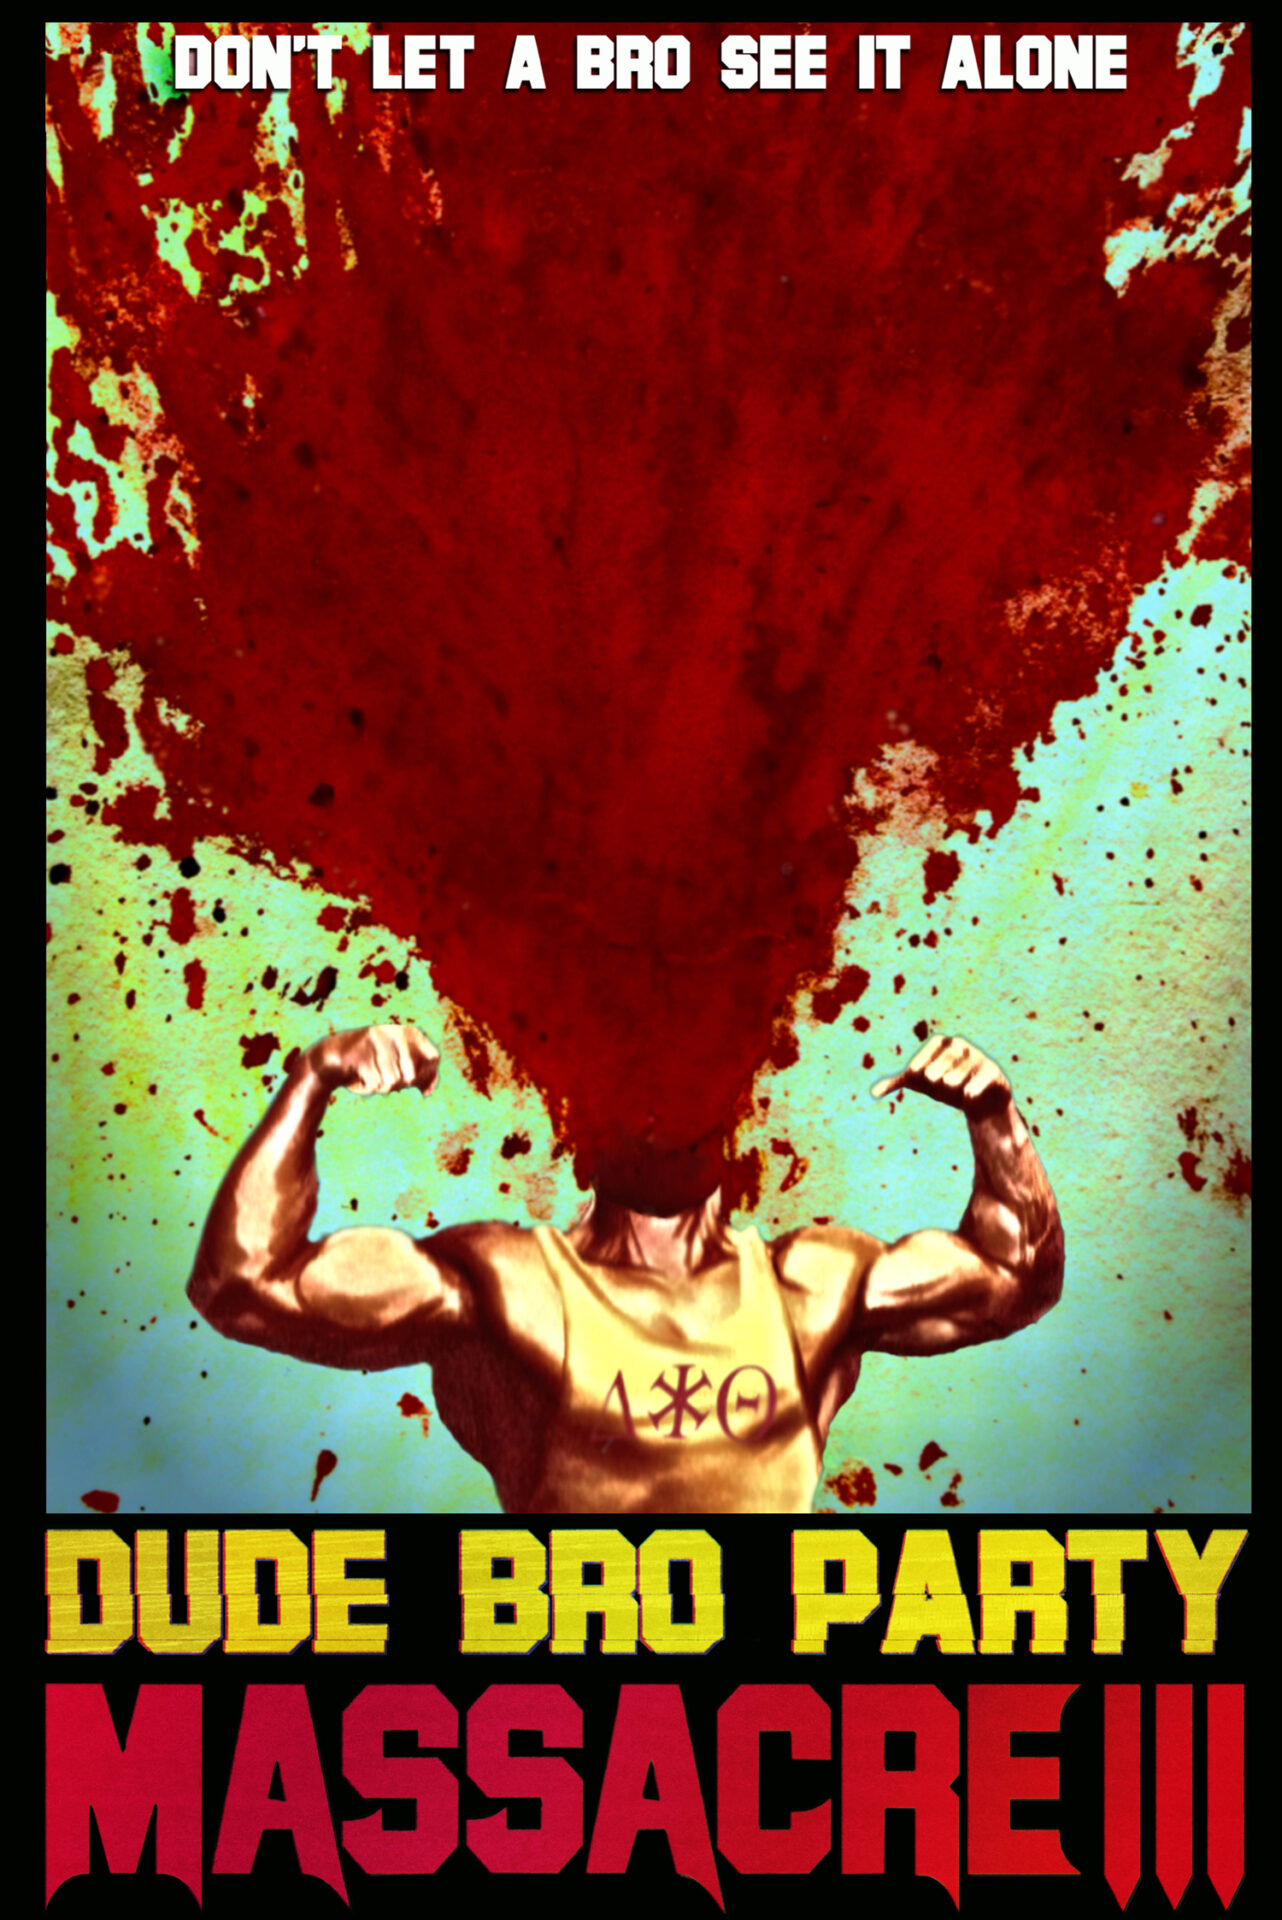 Tomm Jacobsen, Michael Rousselet and Jon Salmon's comedy Dude Bro Party Massacre III